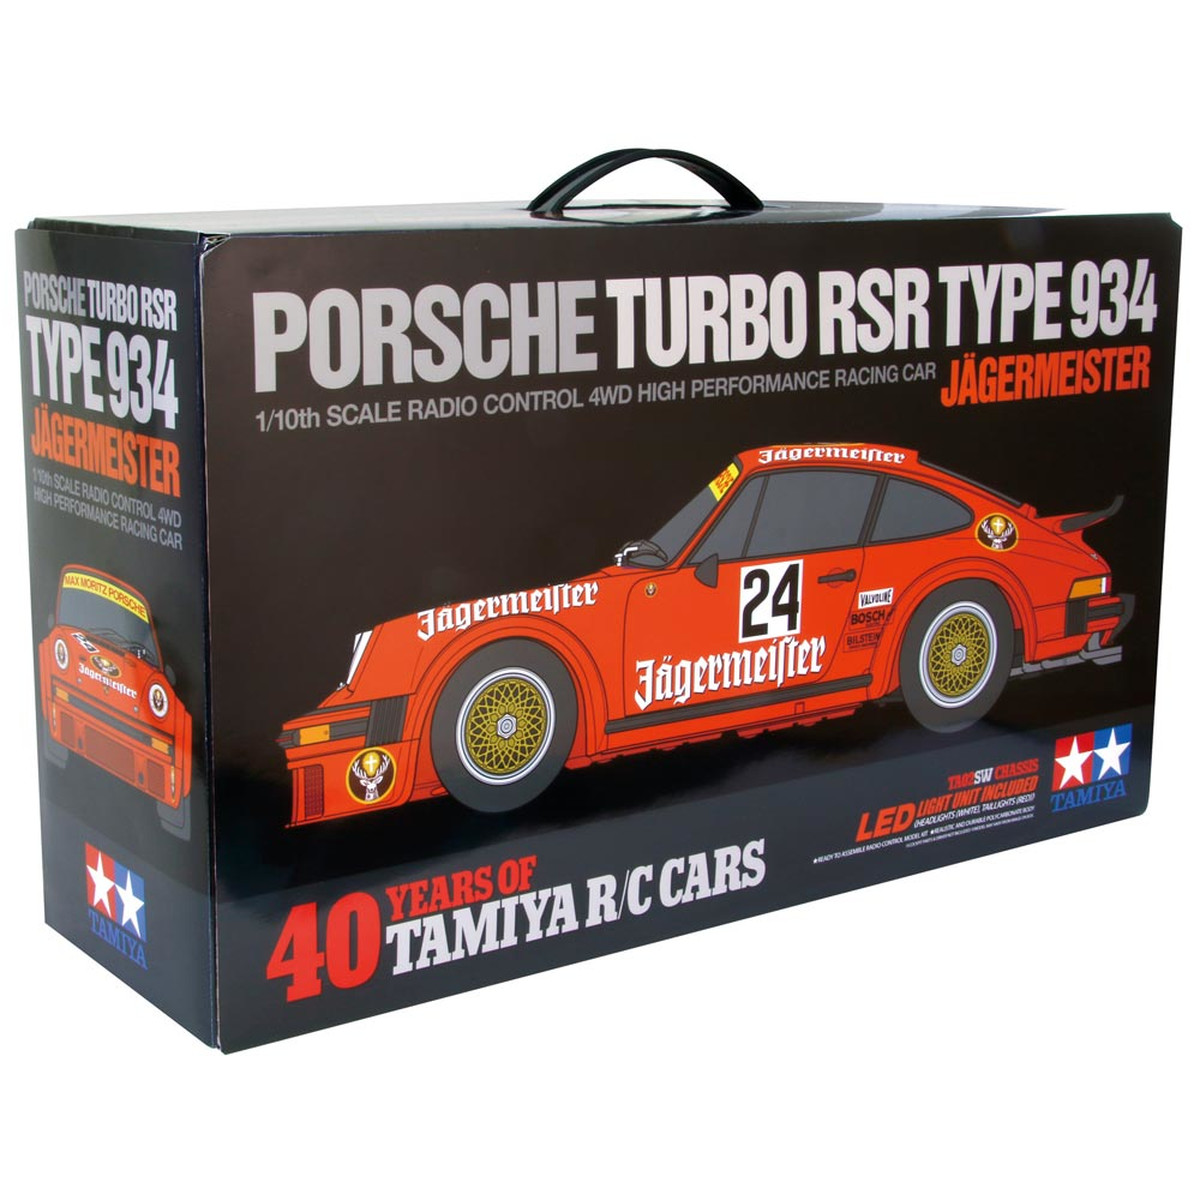 Tamiya Rc Kits For Sale Cheap Toys Kids Toys